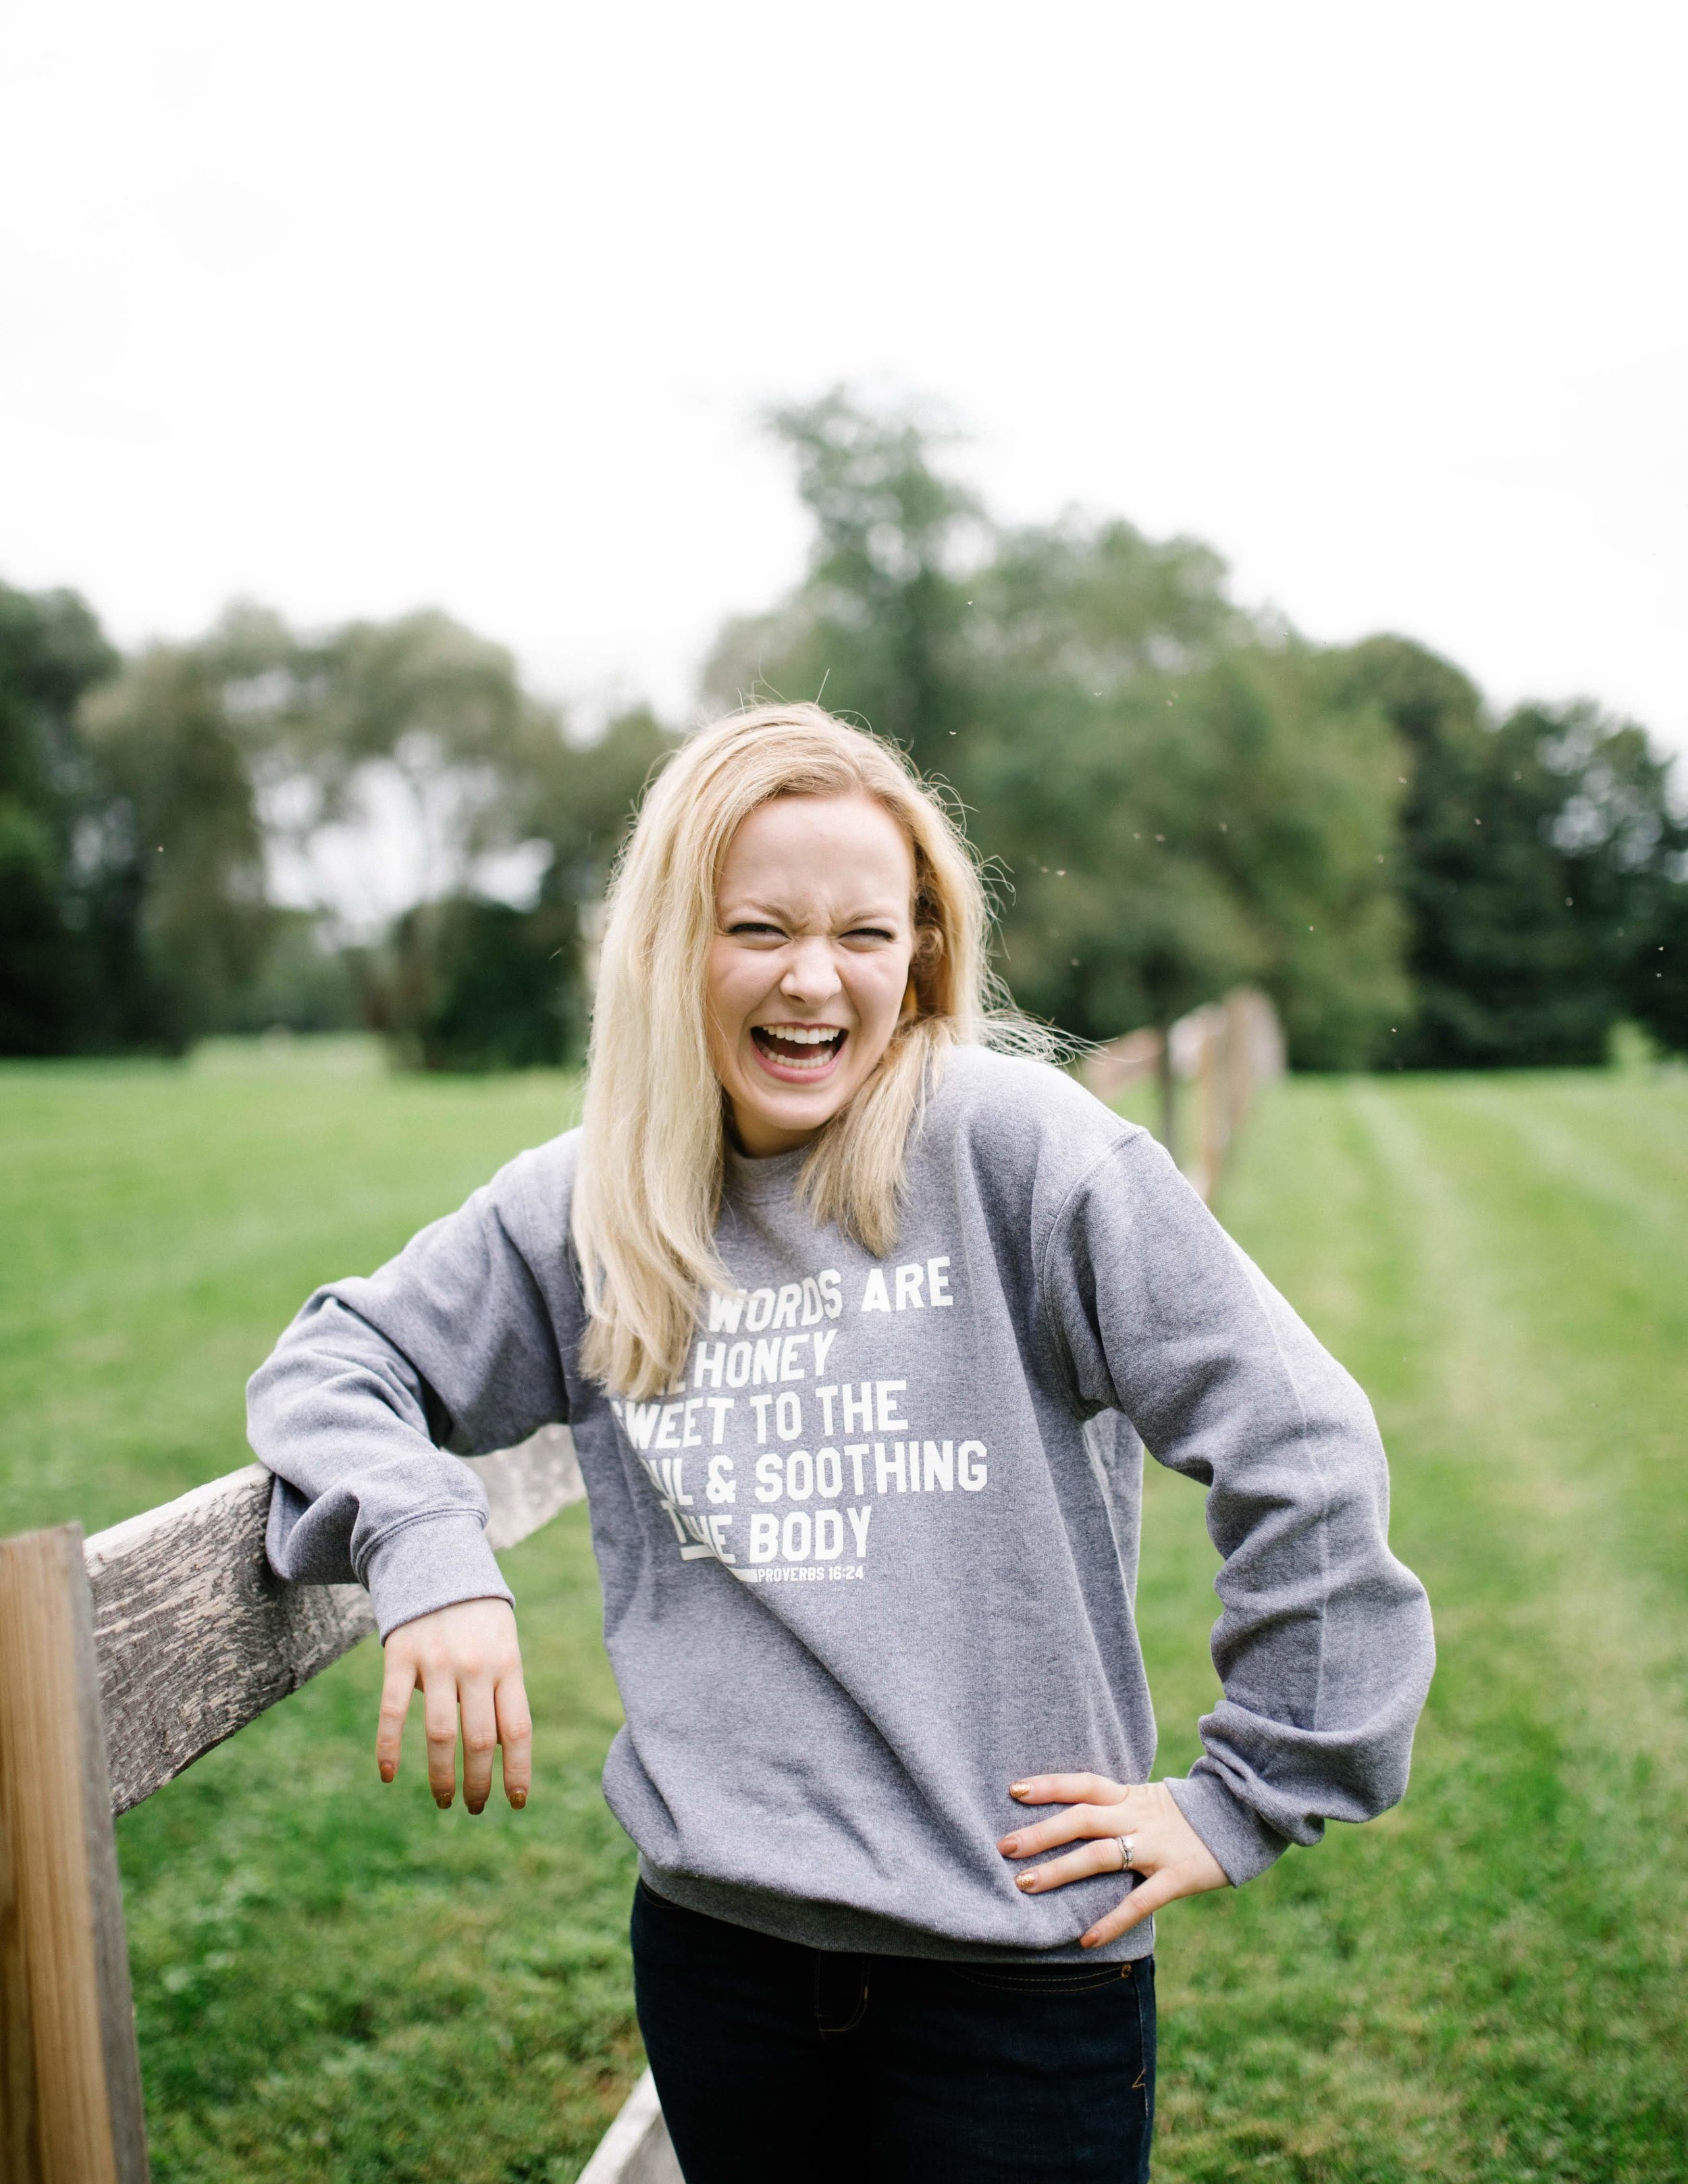 JUlia happily rocking her KInd WOrds Sweat shirt